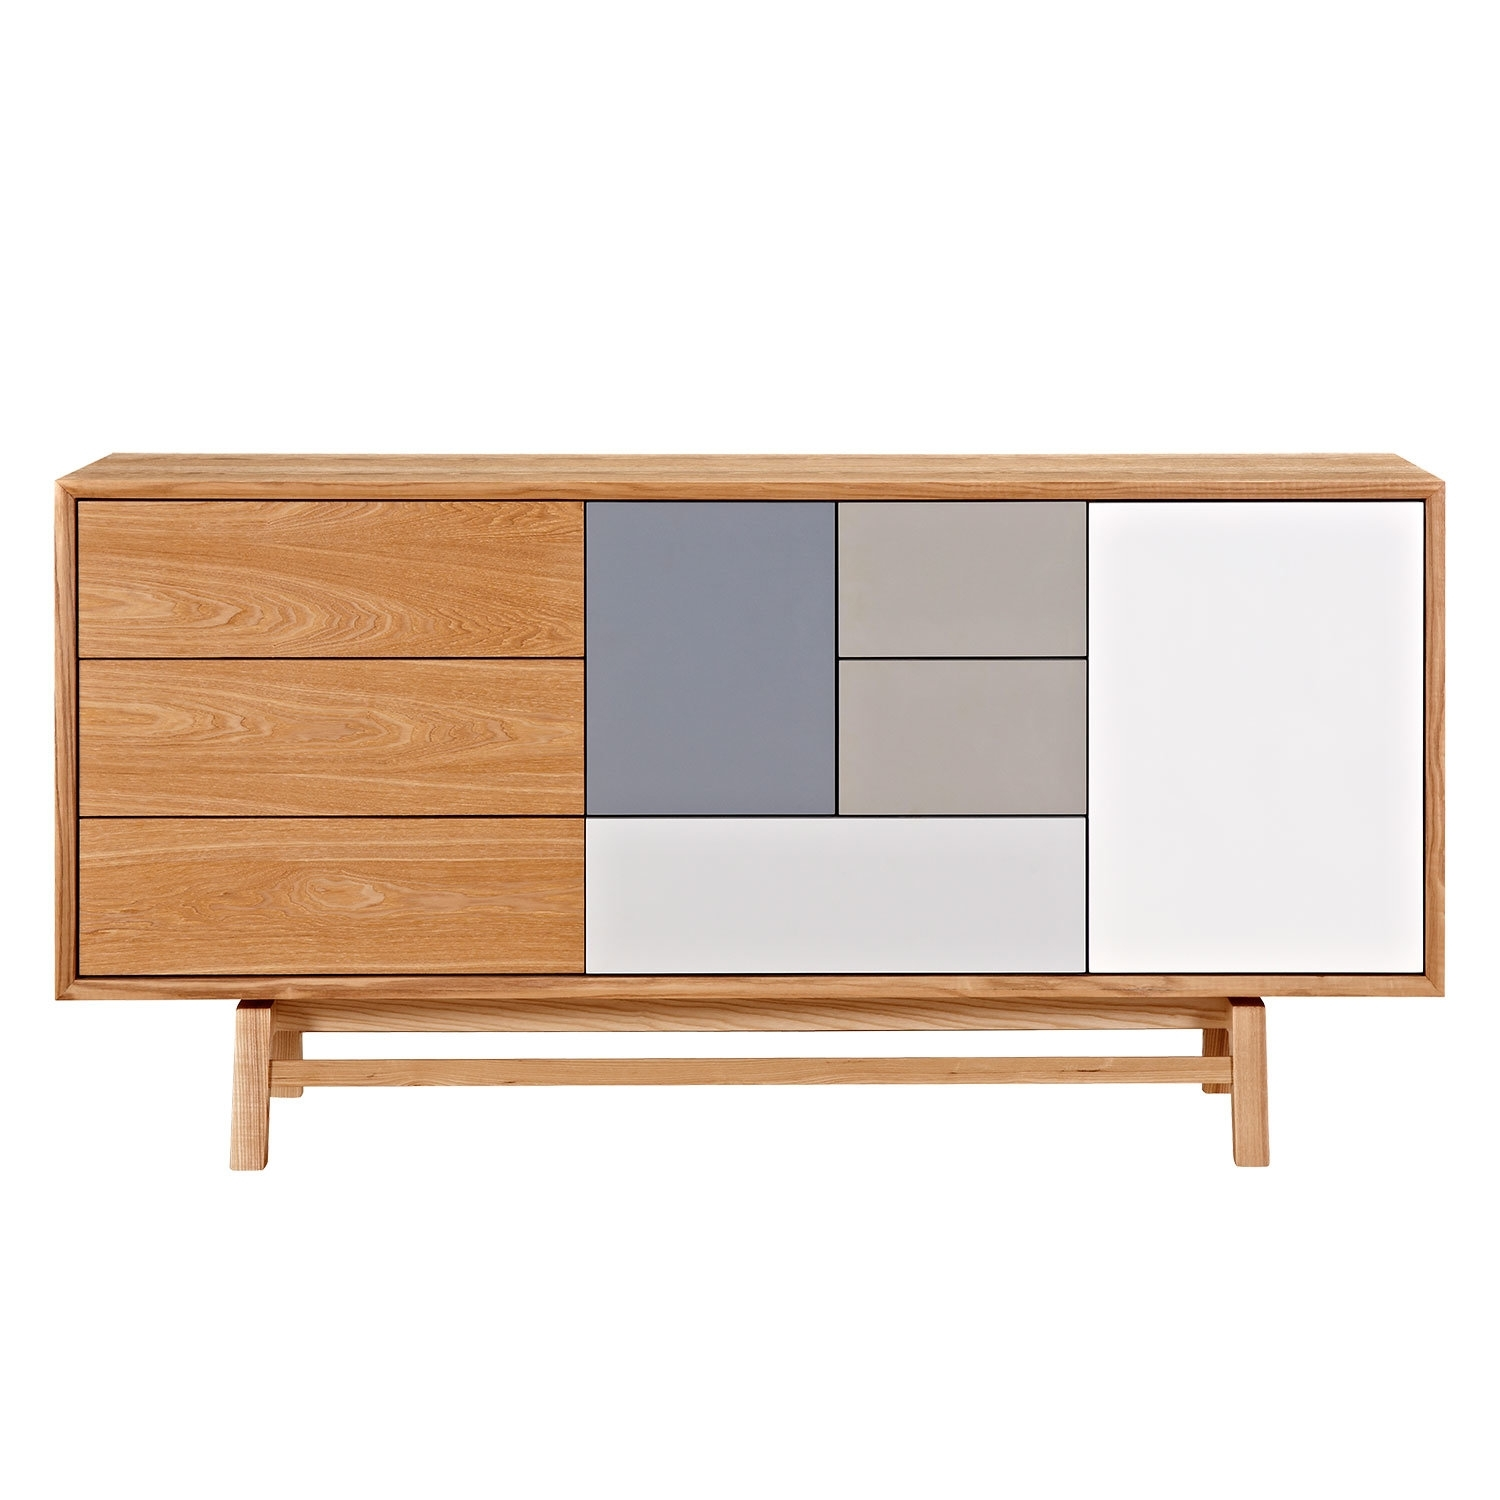 Nyekoncept Grane Sideboard | Wayfair With Latest Solar Refinement Sideboards (#9 of 20)